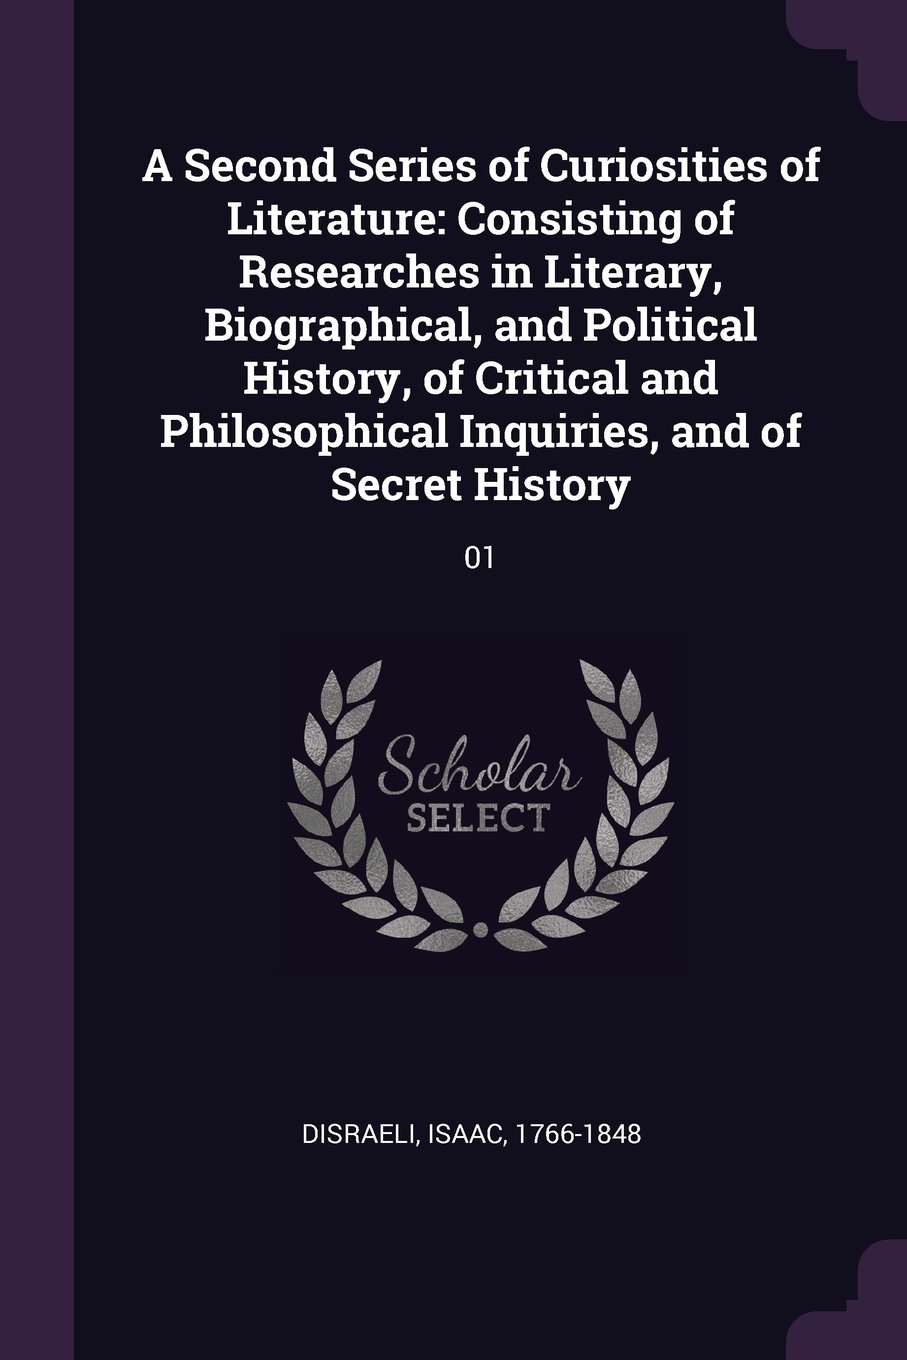 Download A Second Series of Curiosities of Literature: Consisting of Researches in Literary, Biographical, and Political History, of Critical and Philosophical Inquiries, and of Secret History: 01 pdf